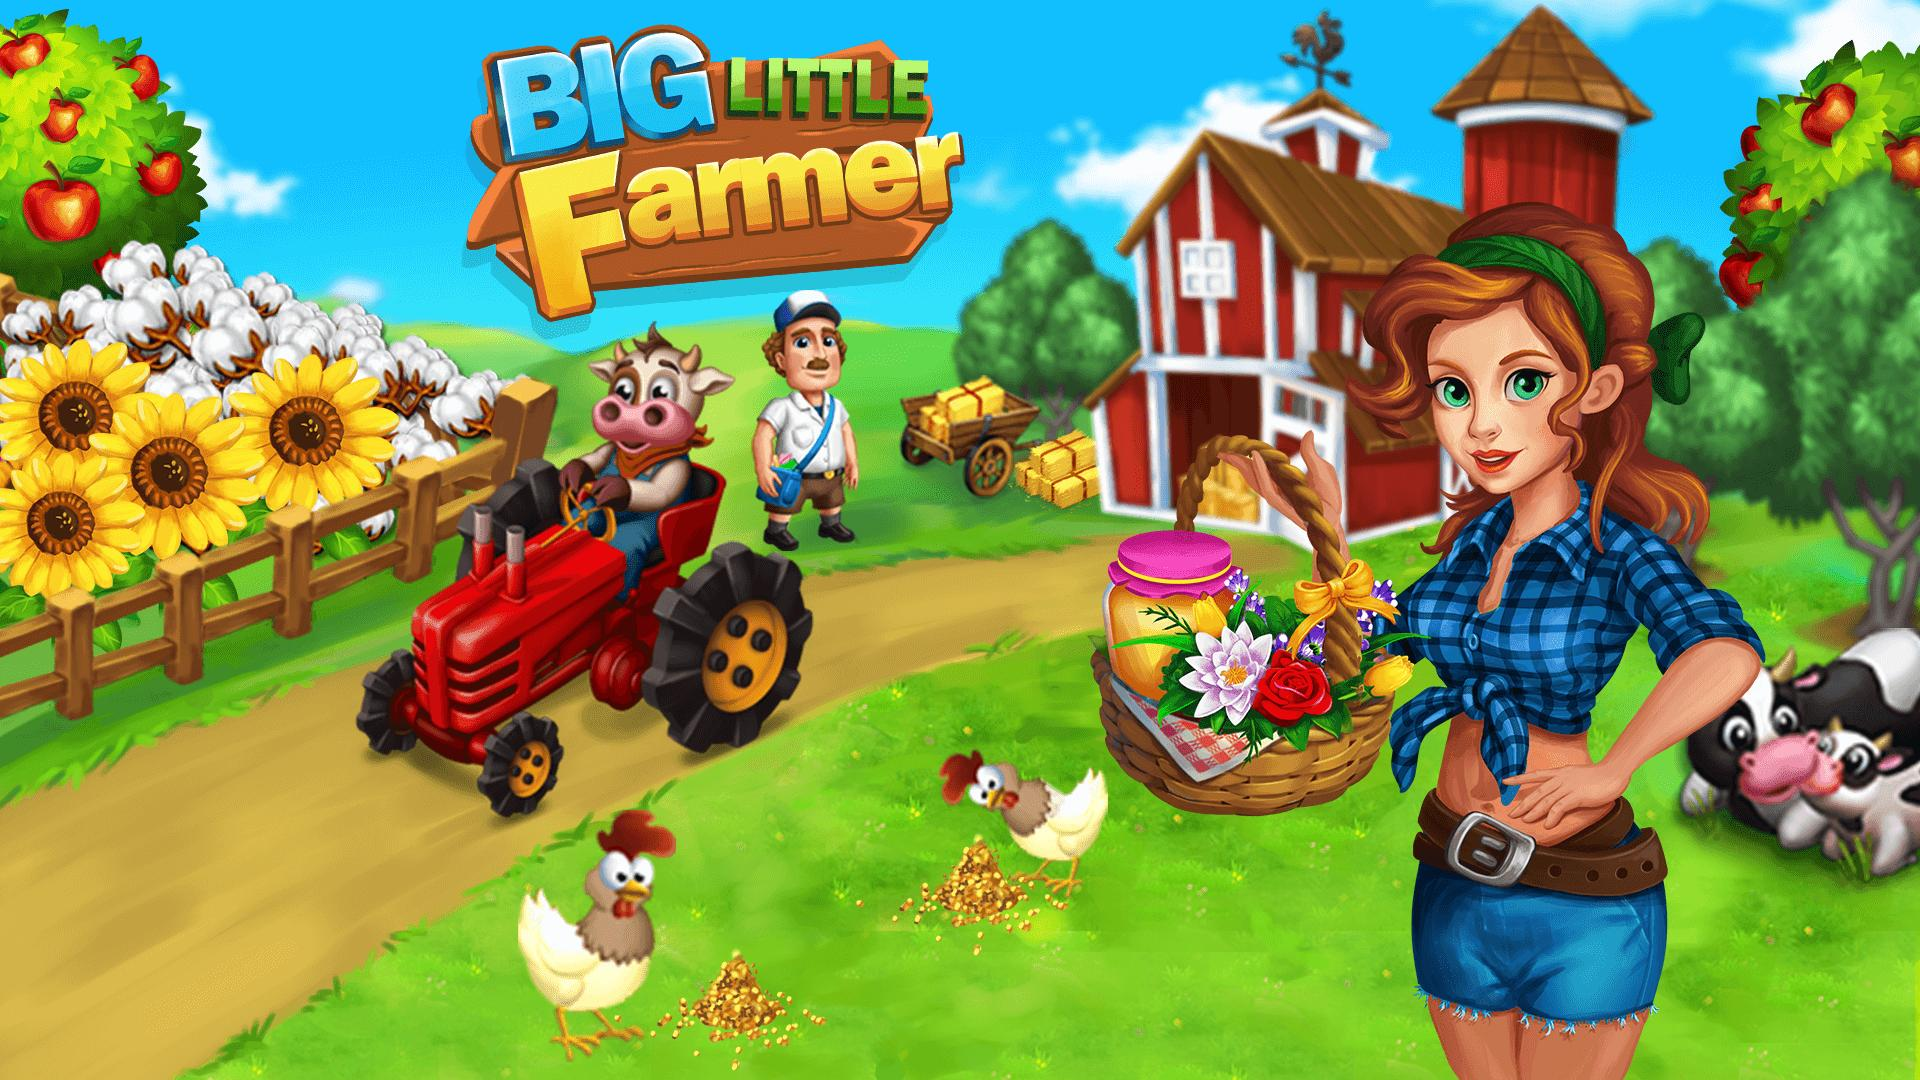 Big Little Farmer for Android - APK Download